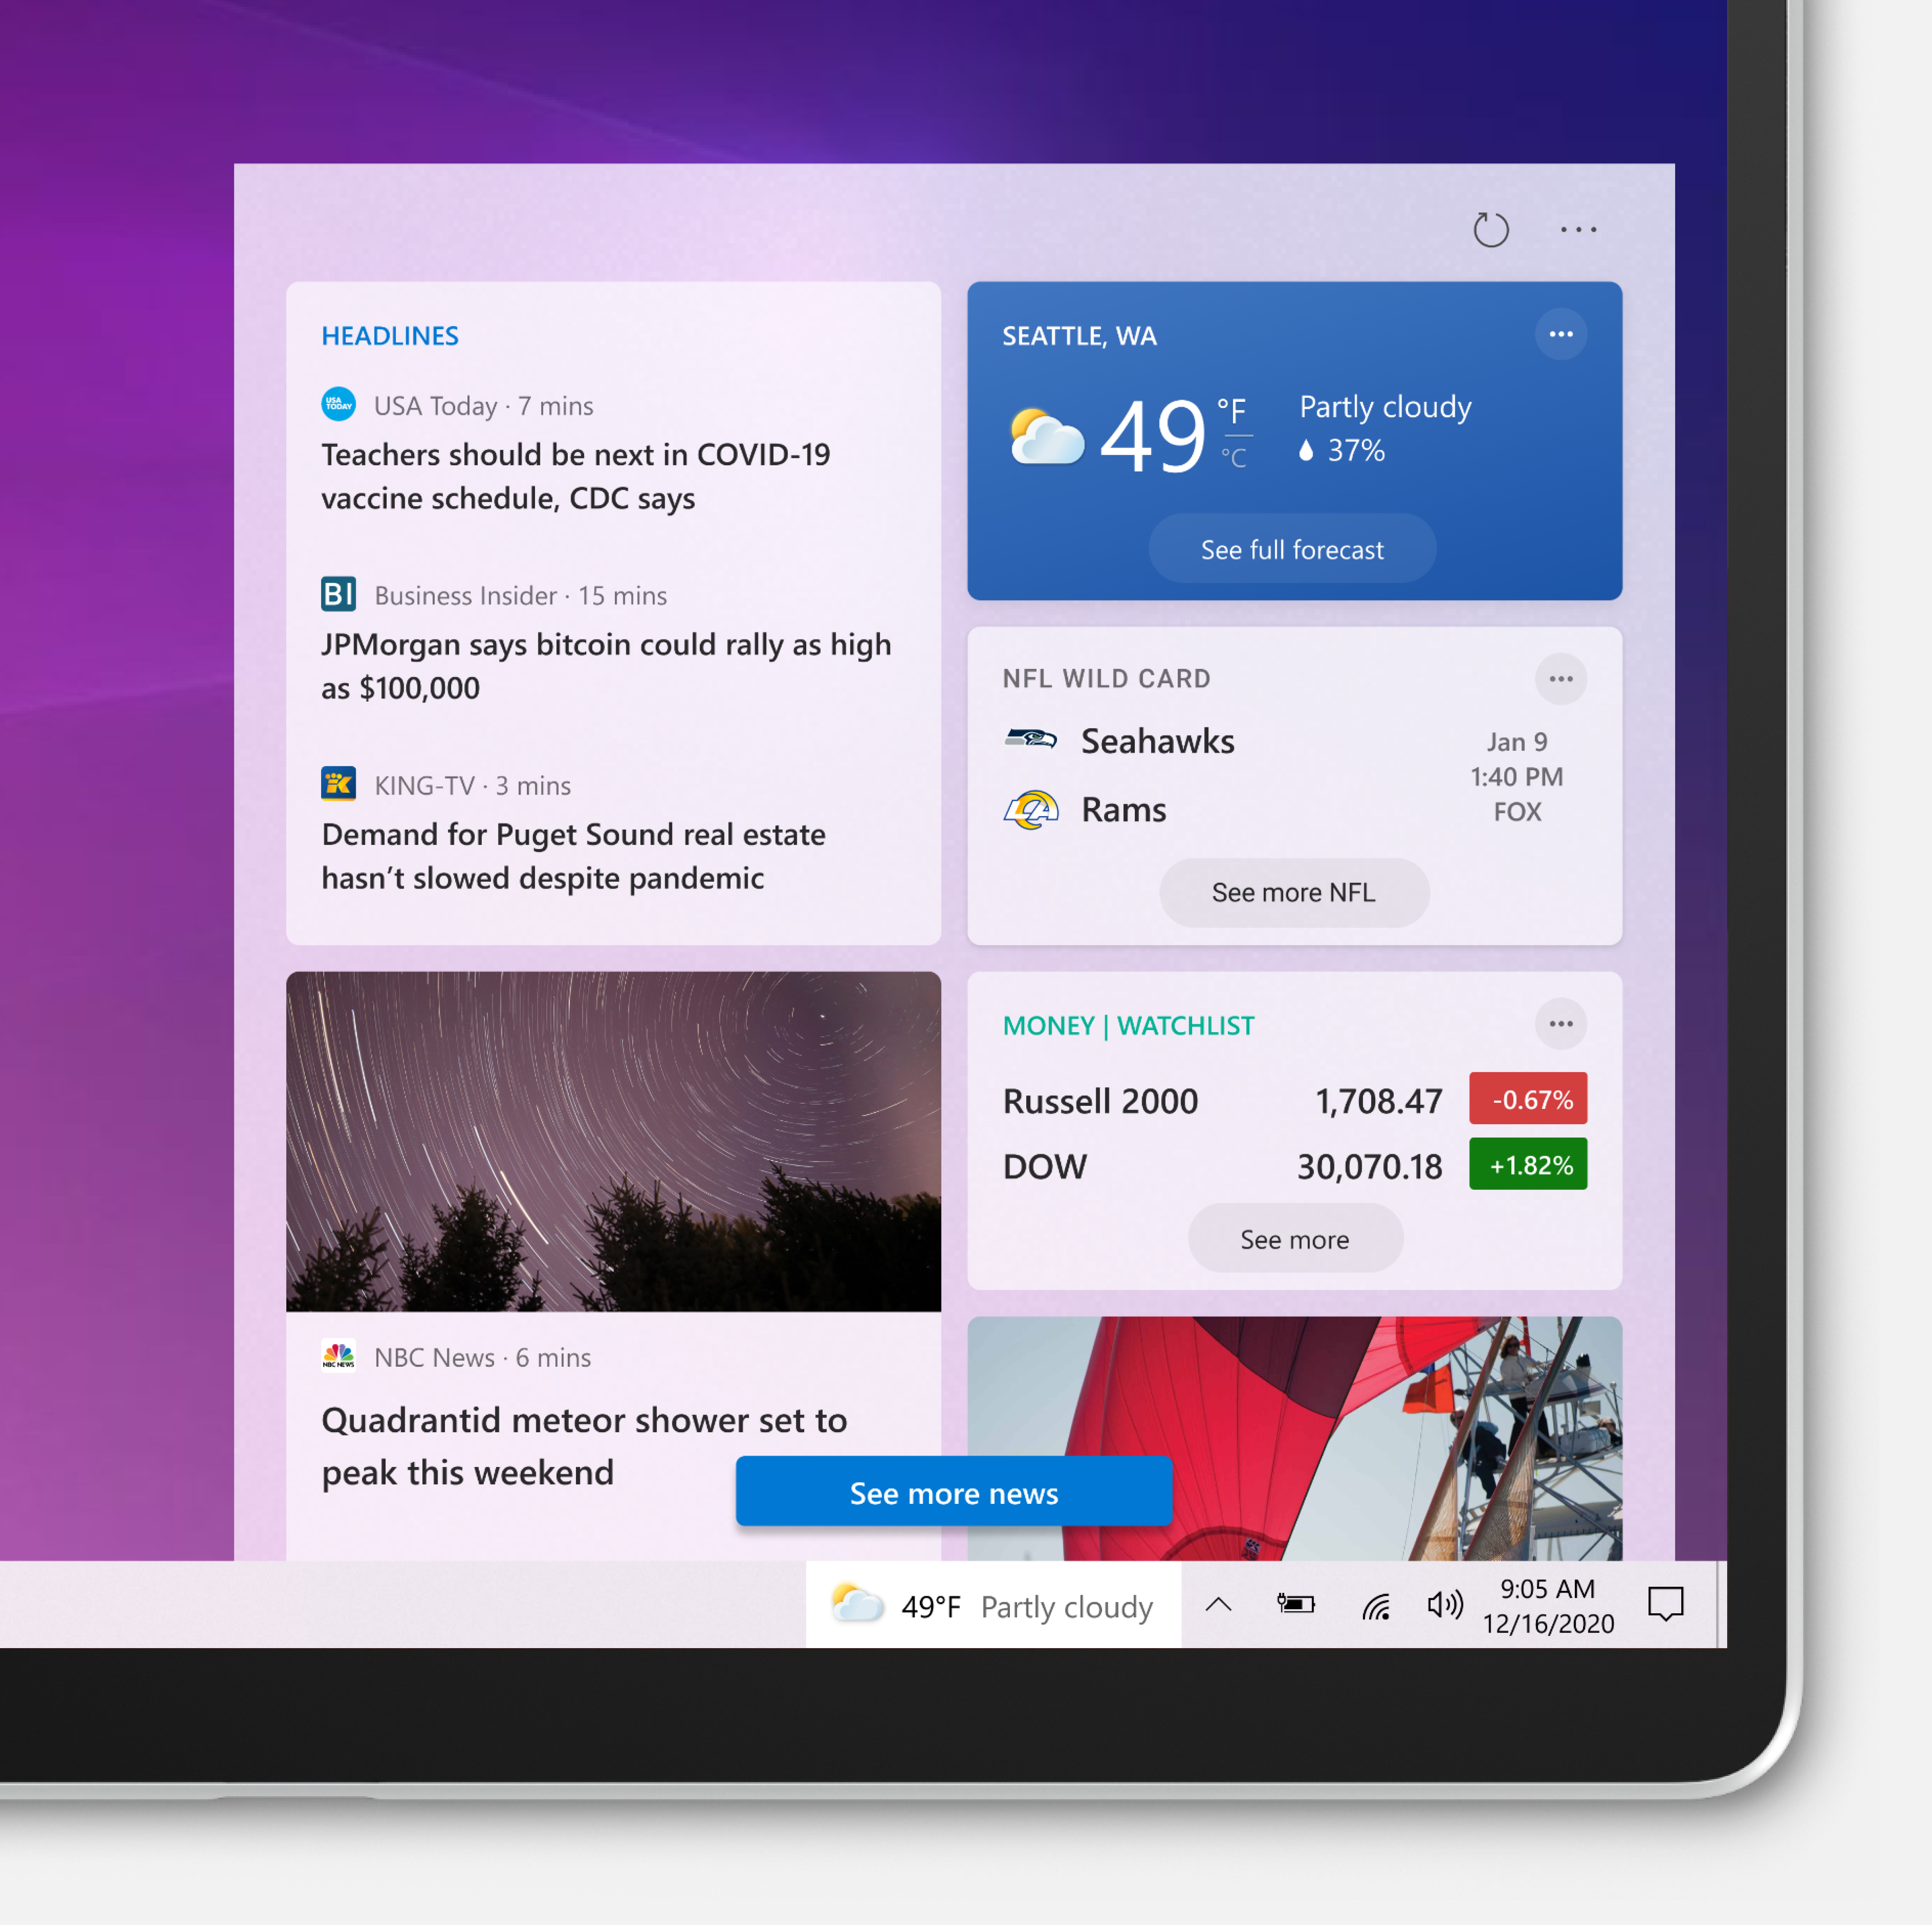 Windows 10 update for news and weather